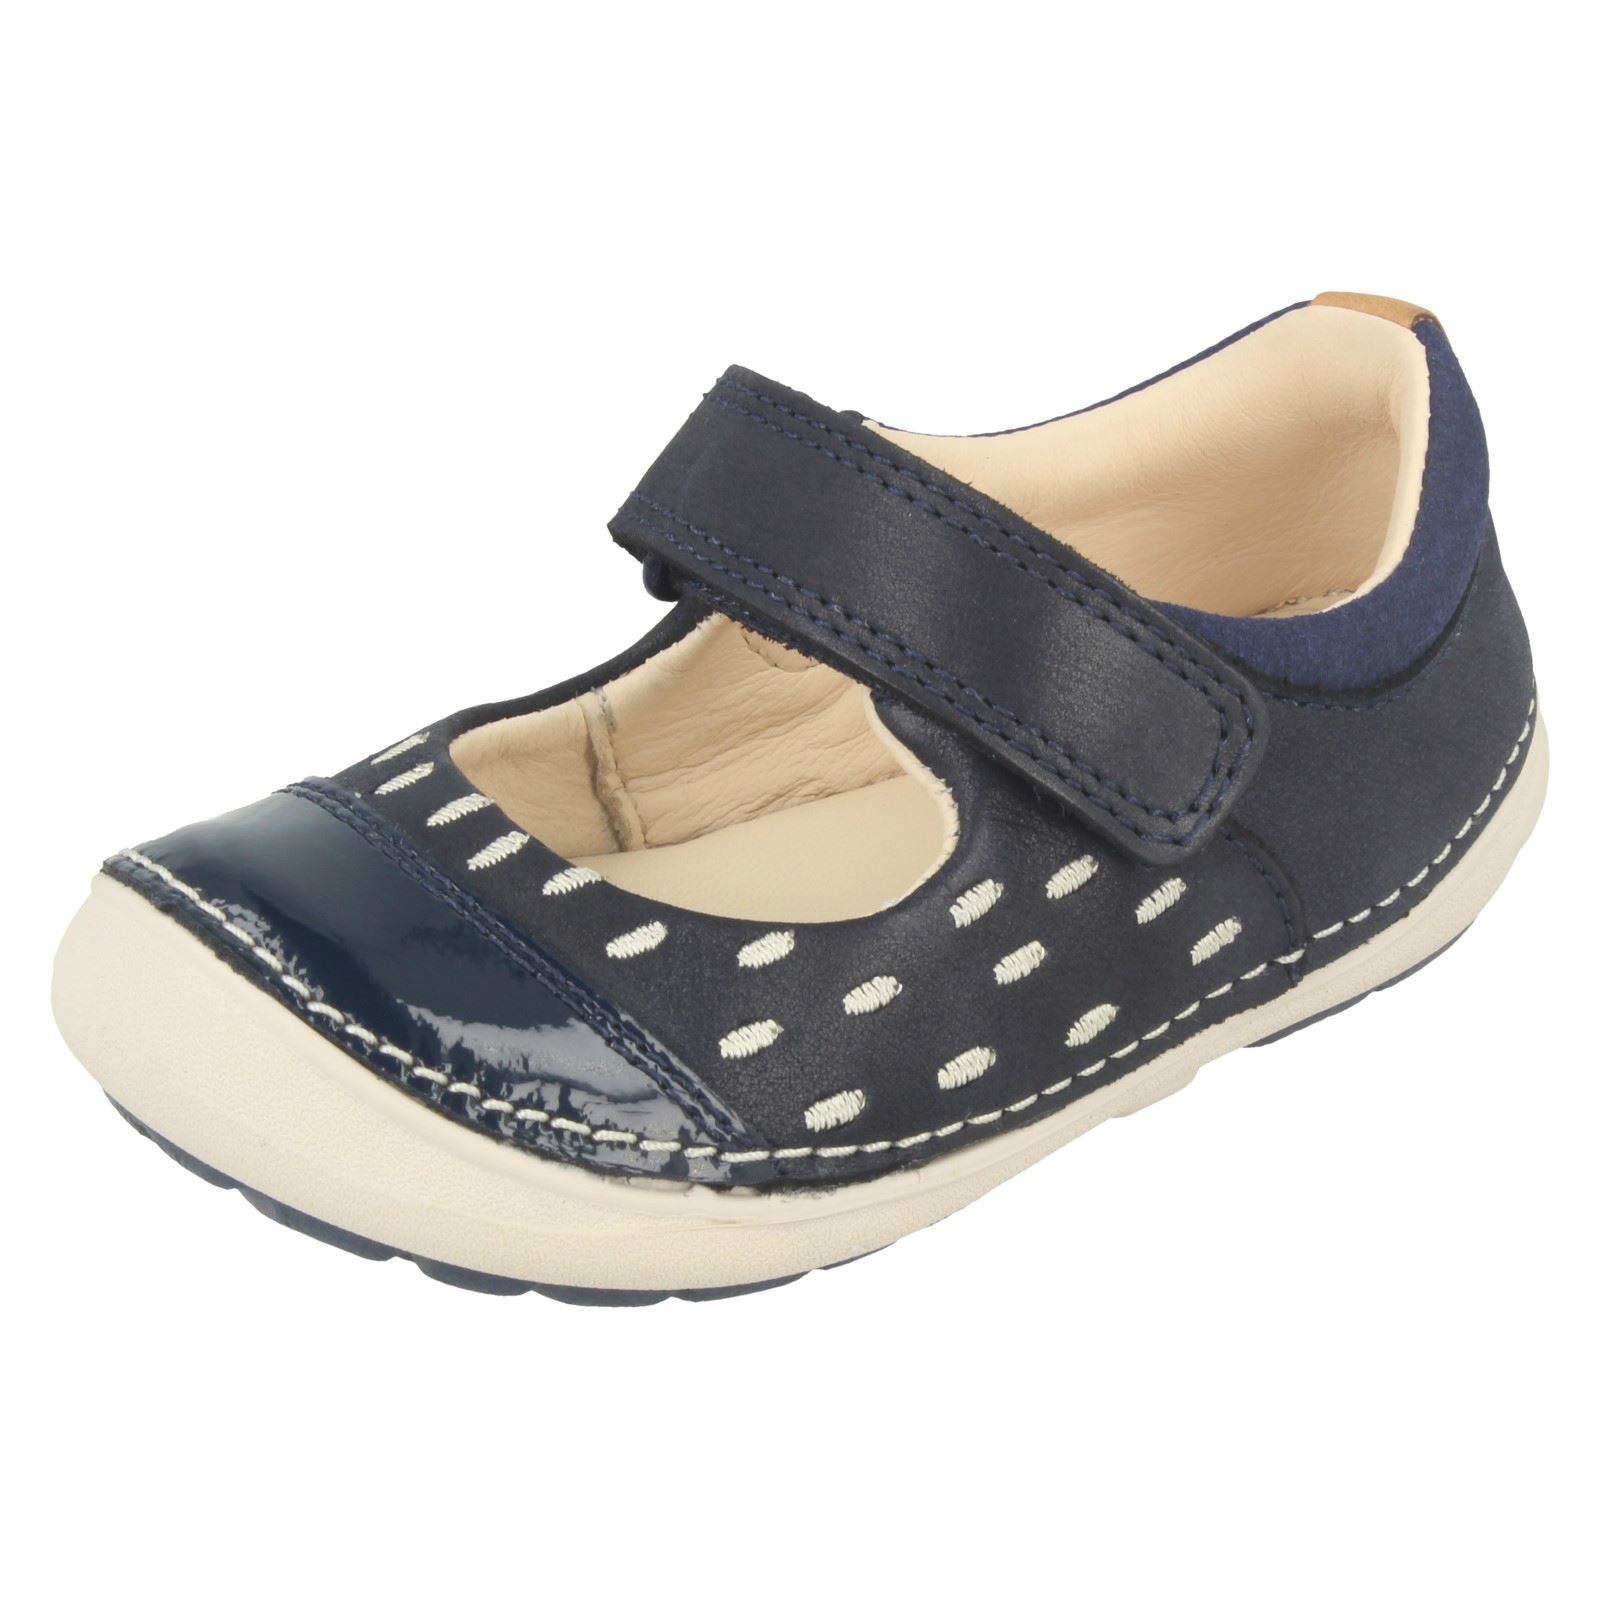 Girls Clarks First Shoes Casual Flats *Softly Lou*